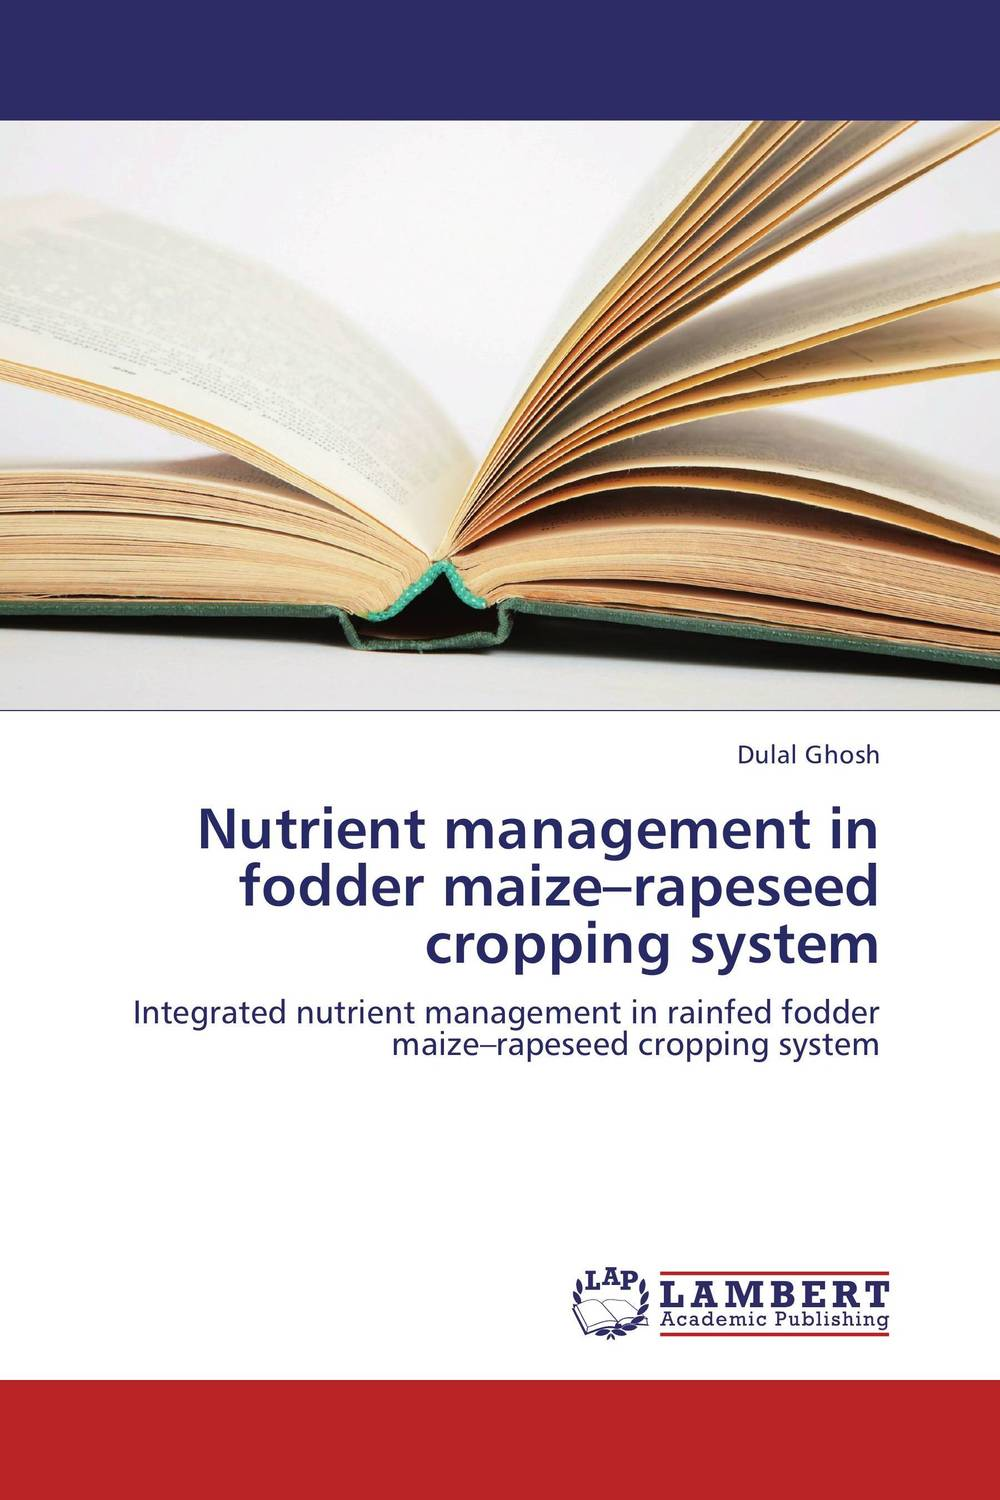 Nutrient management in fodder maize–rapeseed cropping system